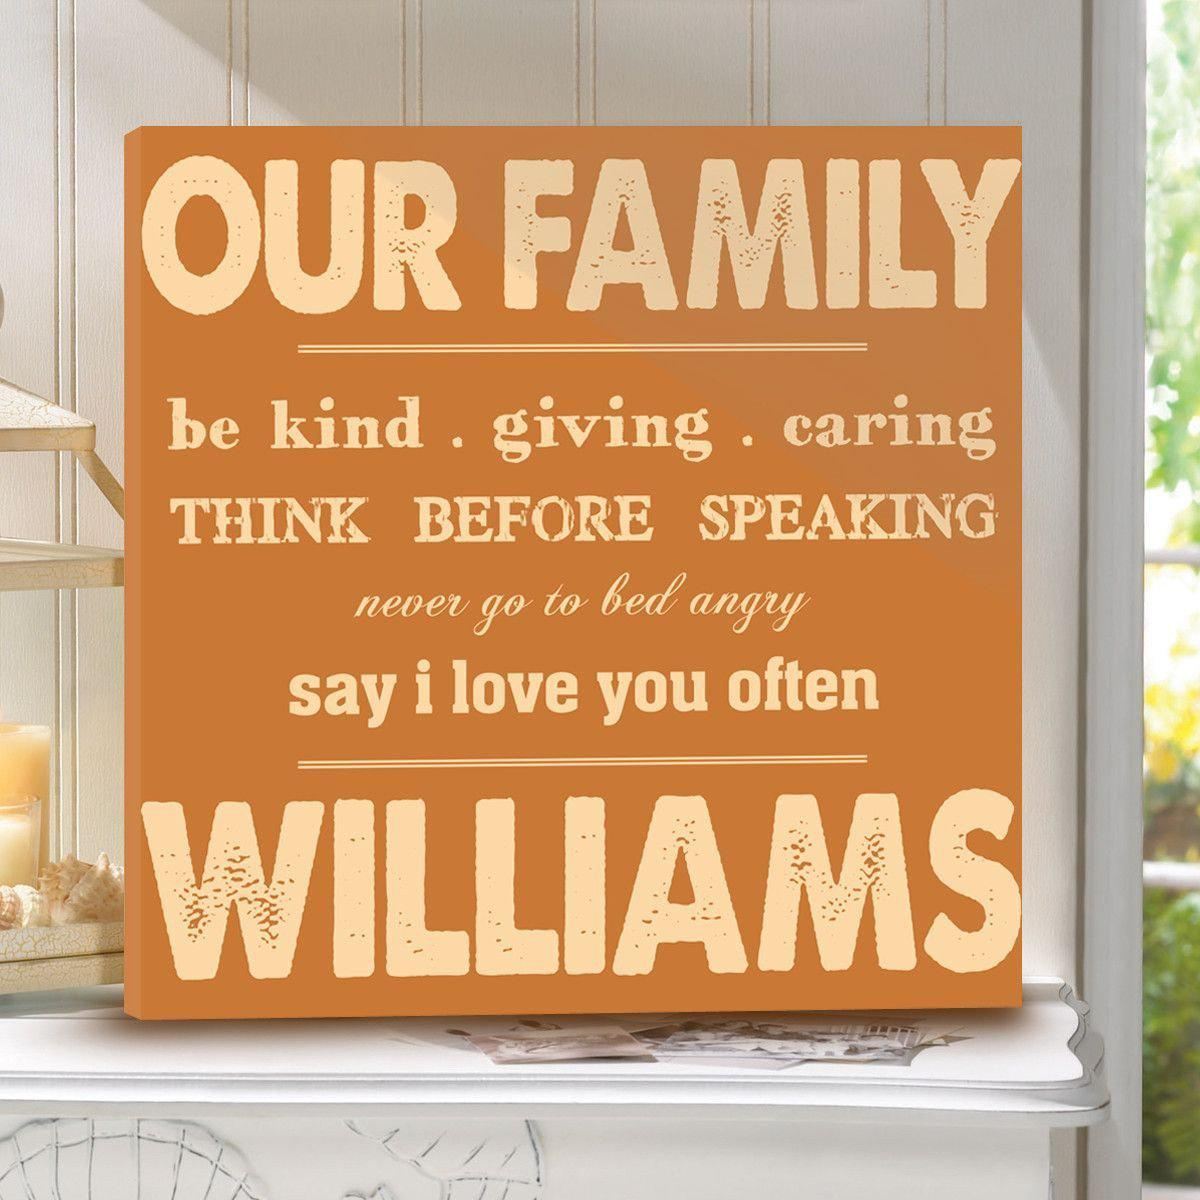 Personalized-Rules-of-Our-Family-Canvas-Sign